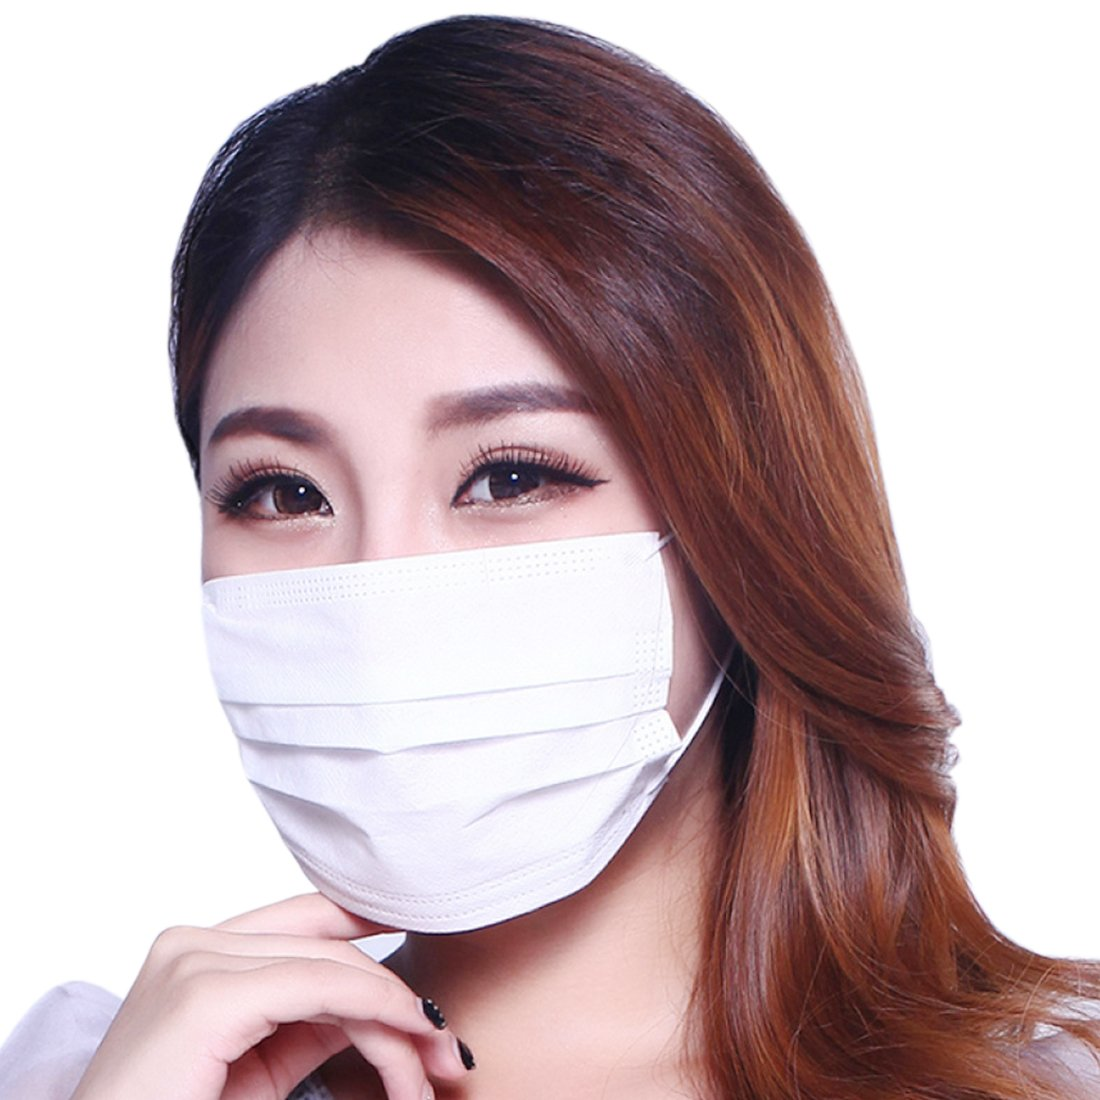 80 Pcs Disposable Surgical Mask,Marygel 3-PLY Non-woven Fabric Air permeability Hypoallergenic(White)